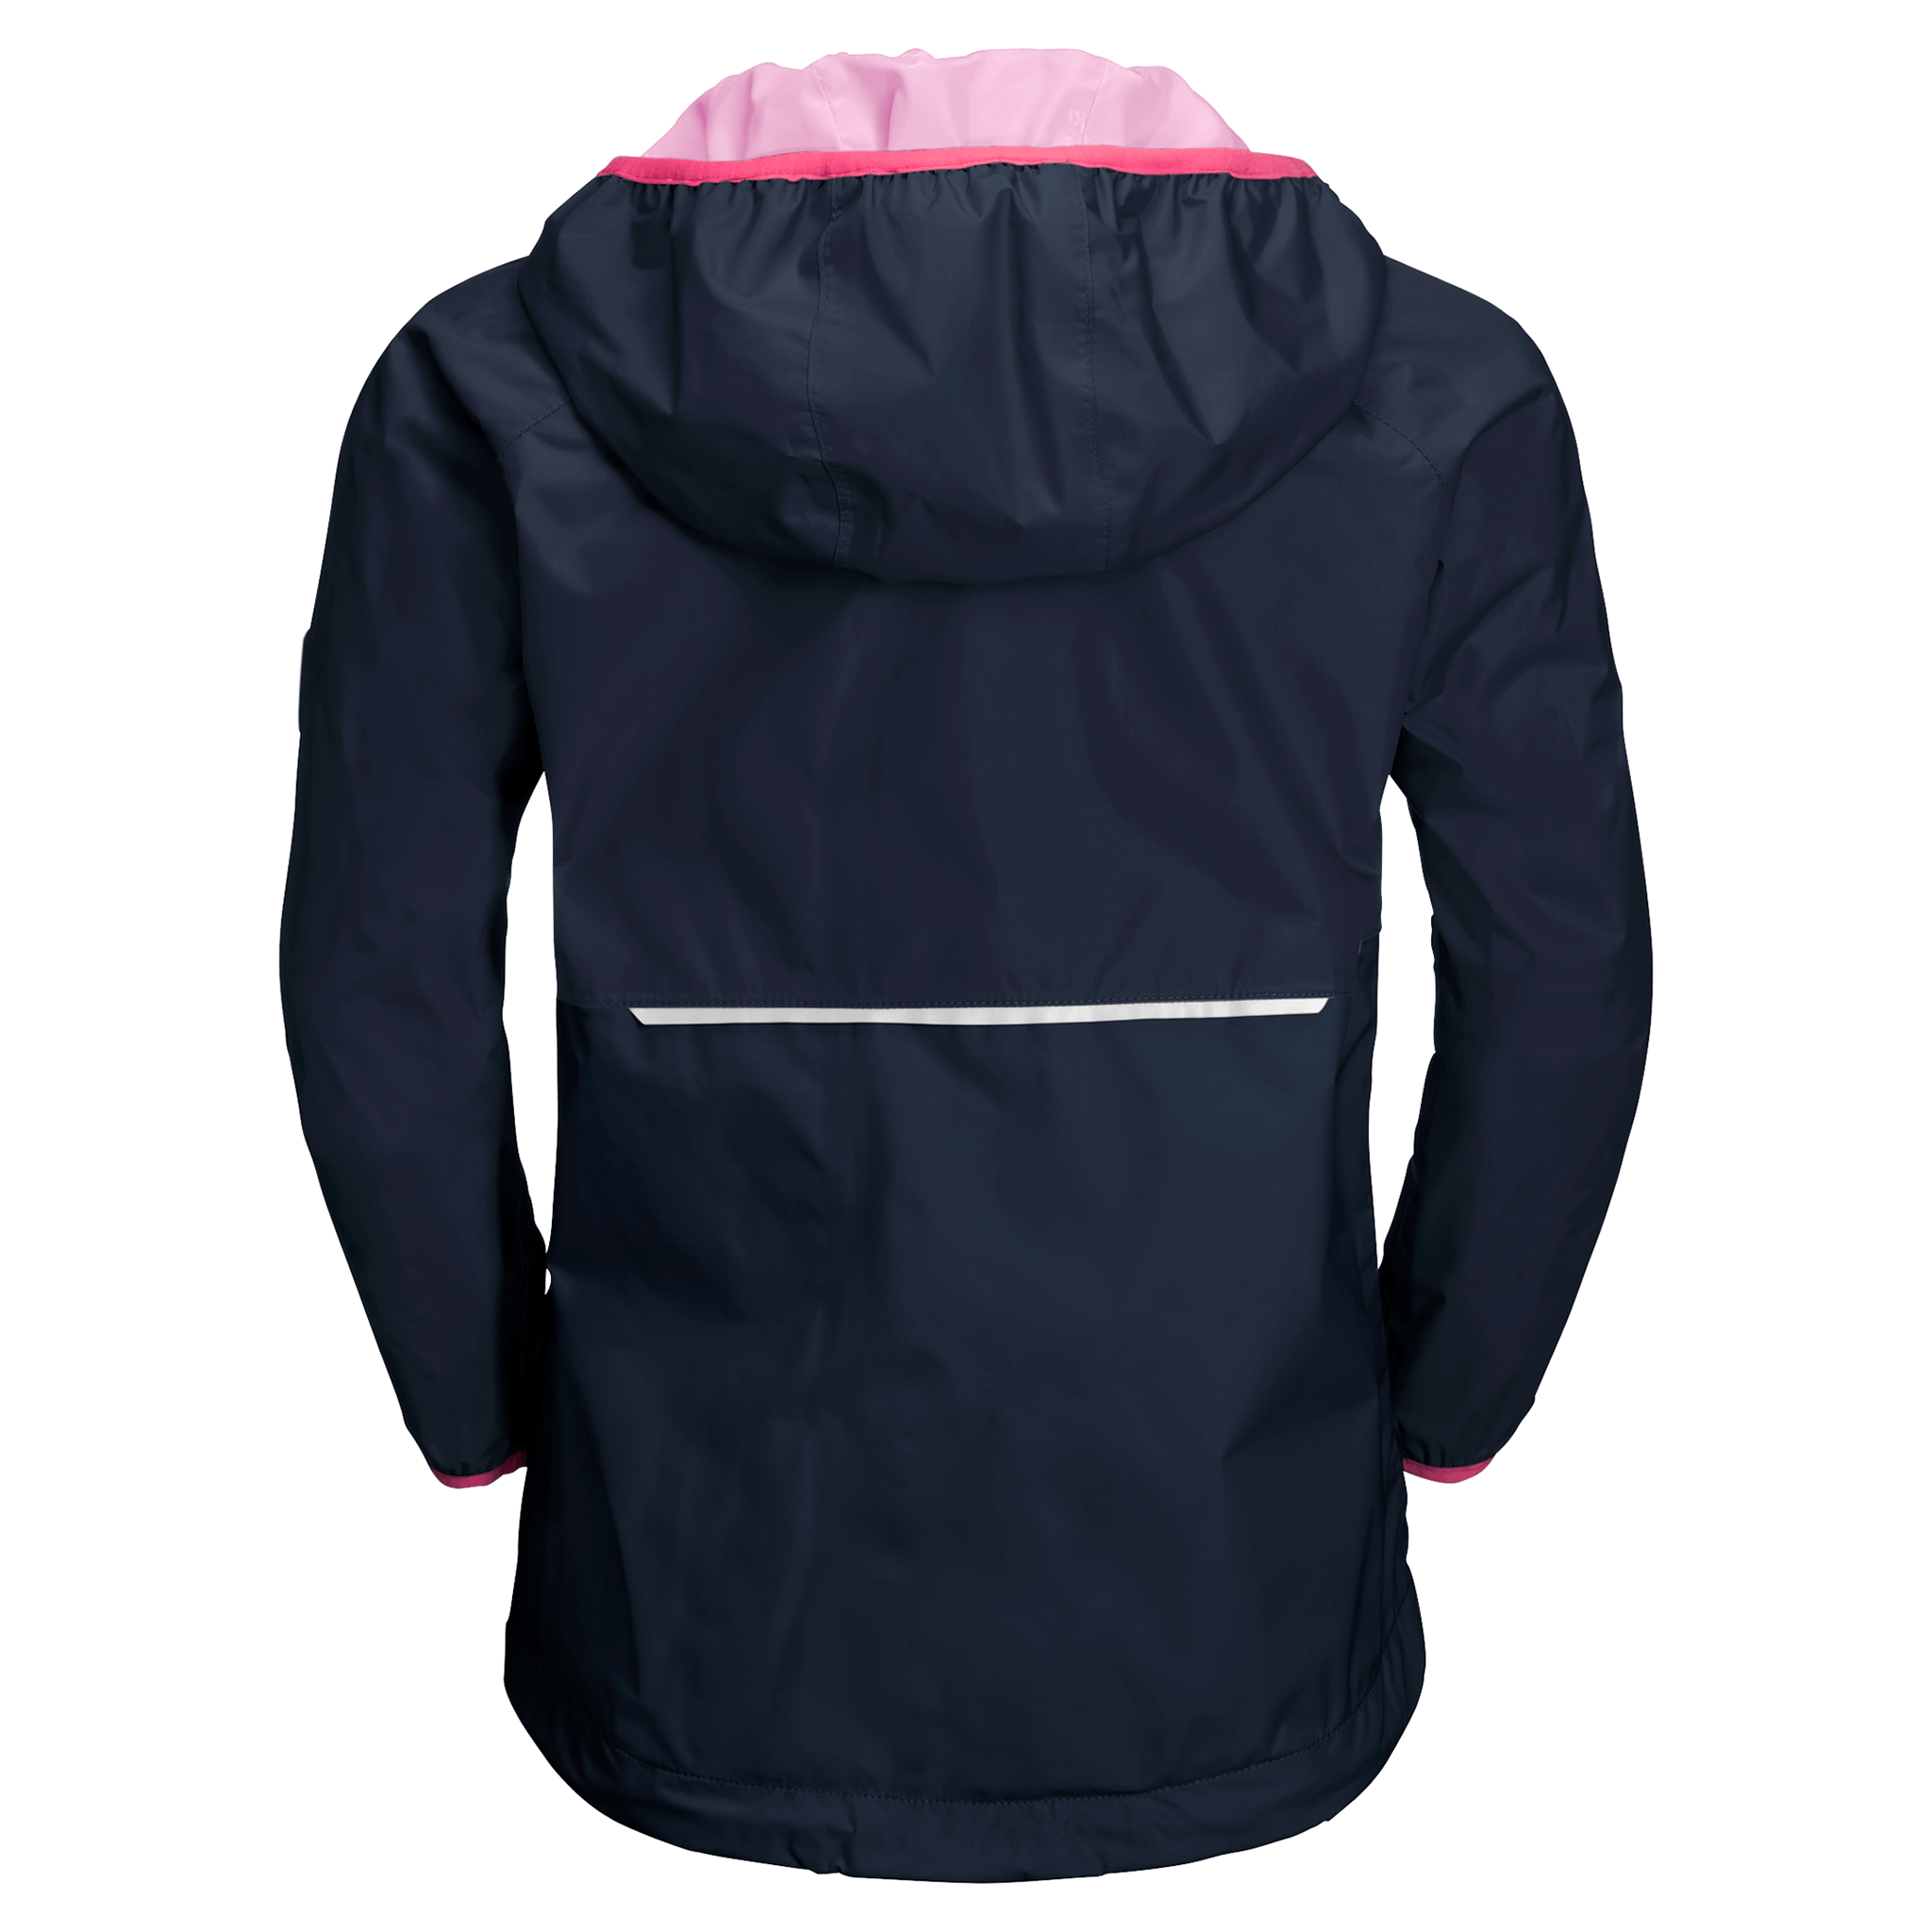 Midnight Blue Kids' Rain Jacket